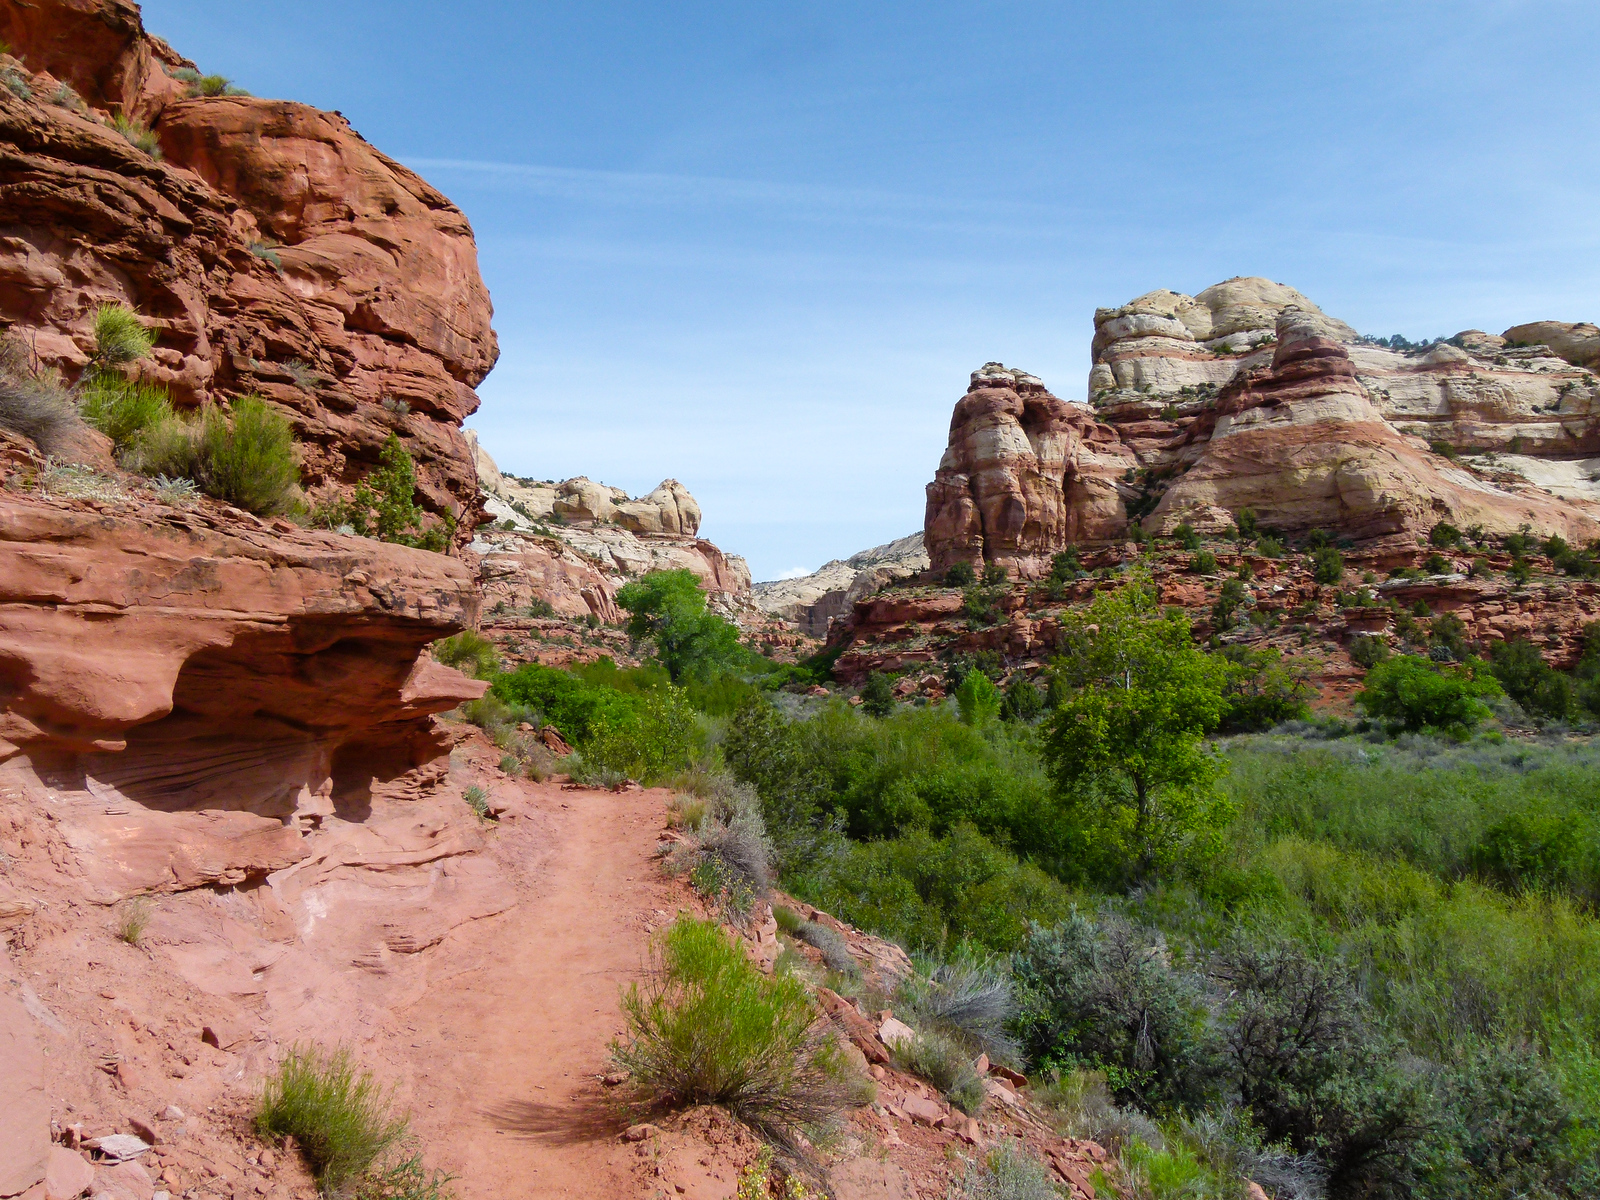 Hiking to Lower Calf Creek Falls is one of our favorite fun places to go in southern Utah.